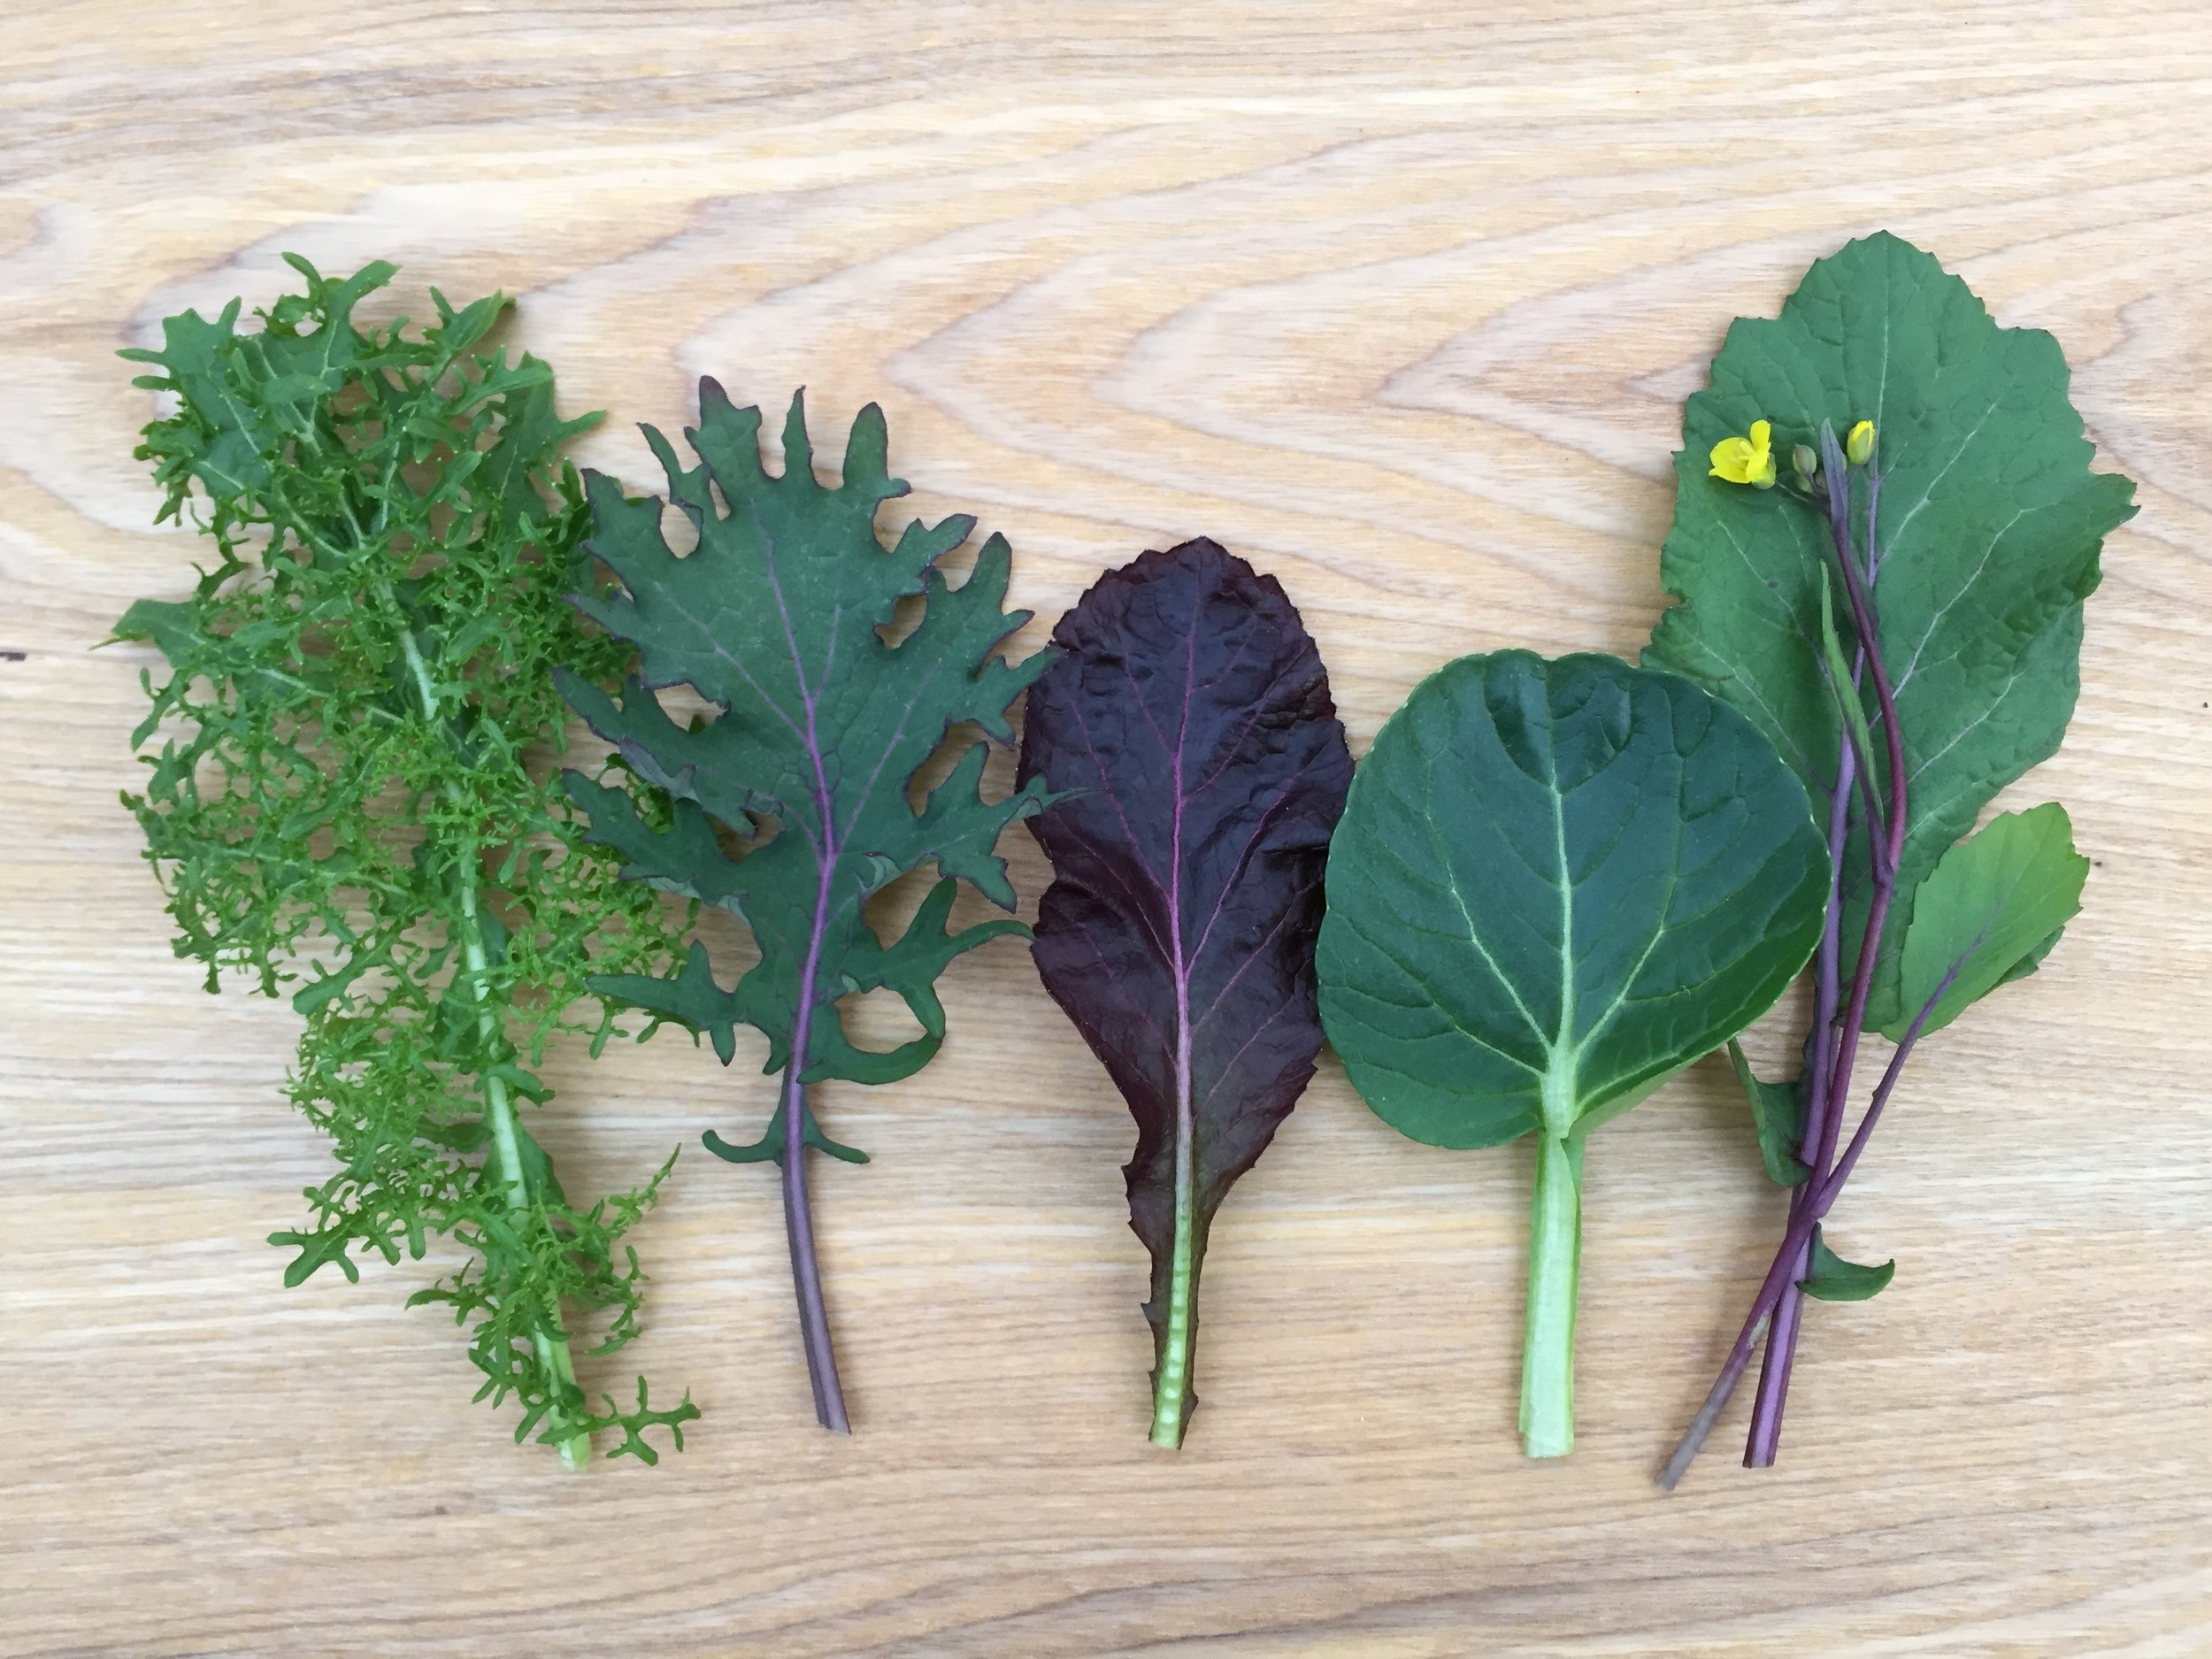 From left to right: Green Mustard, Kale, Red Mustard, Tatsoi, Flowering Kale (Hon Tsai Tai)